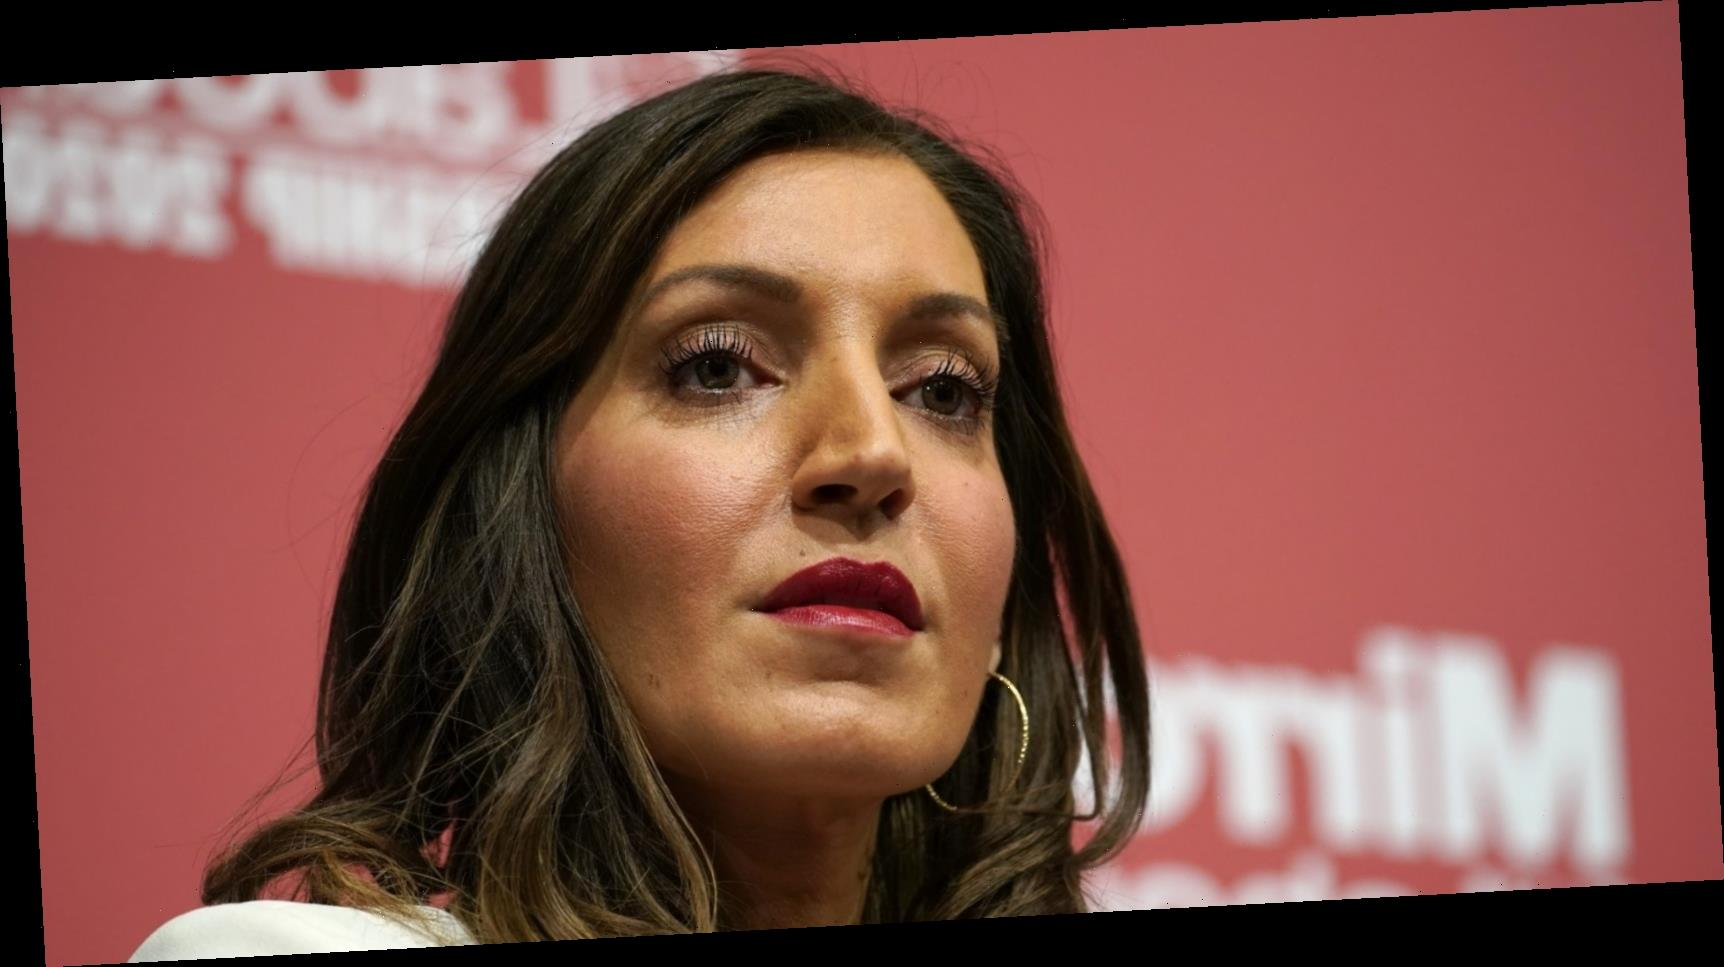 Dr Rosena Allin-Khan had the perfect response to Matt Hancock telling her to 'watch her tone'